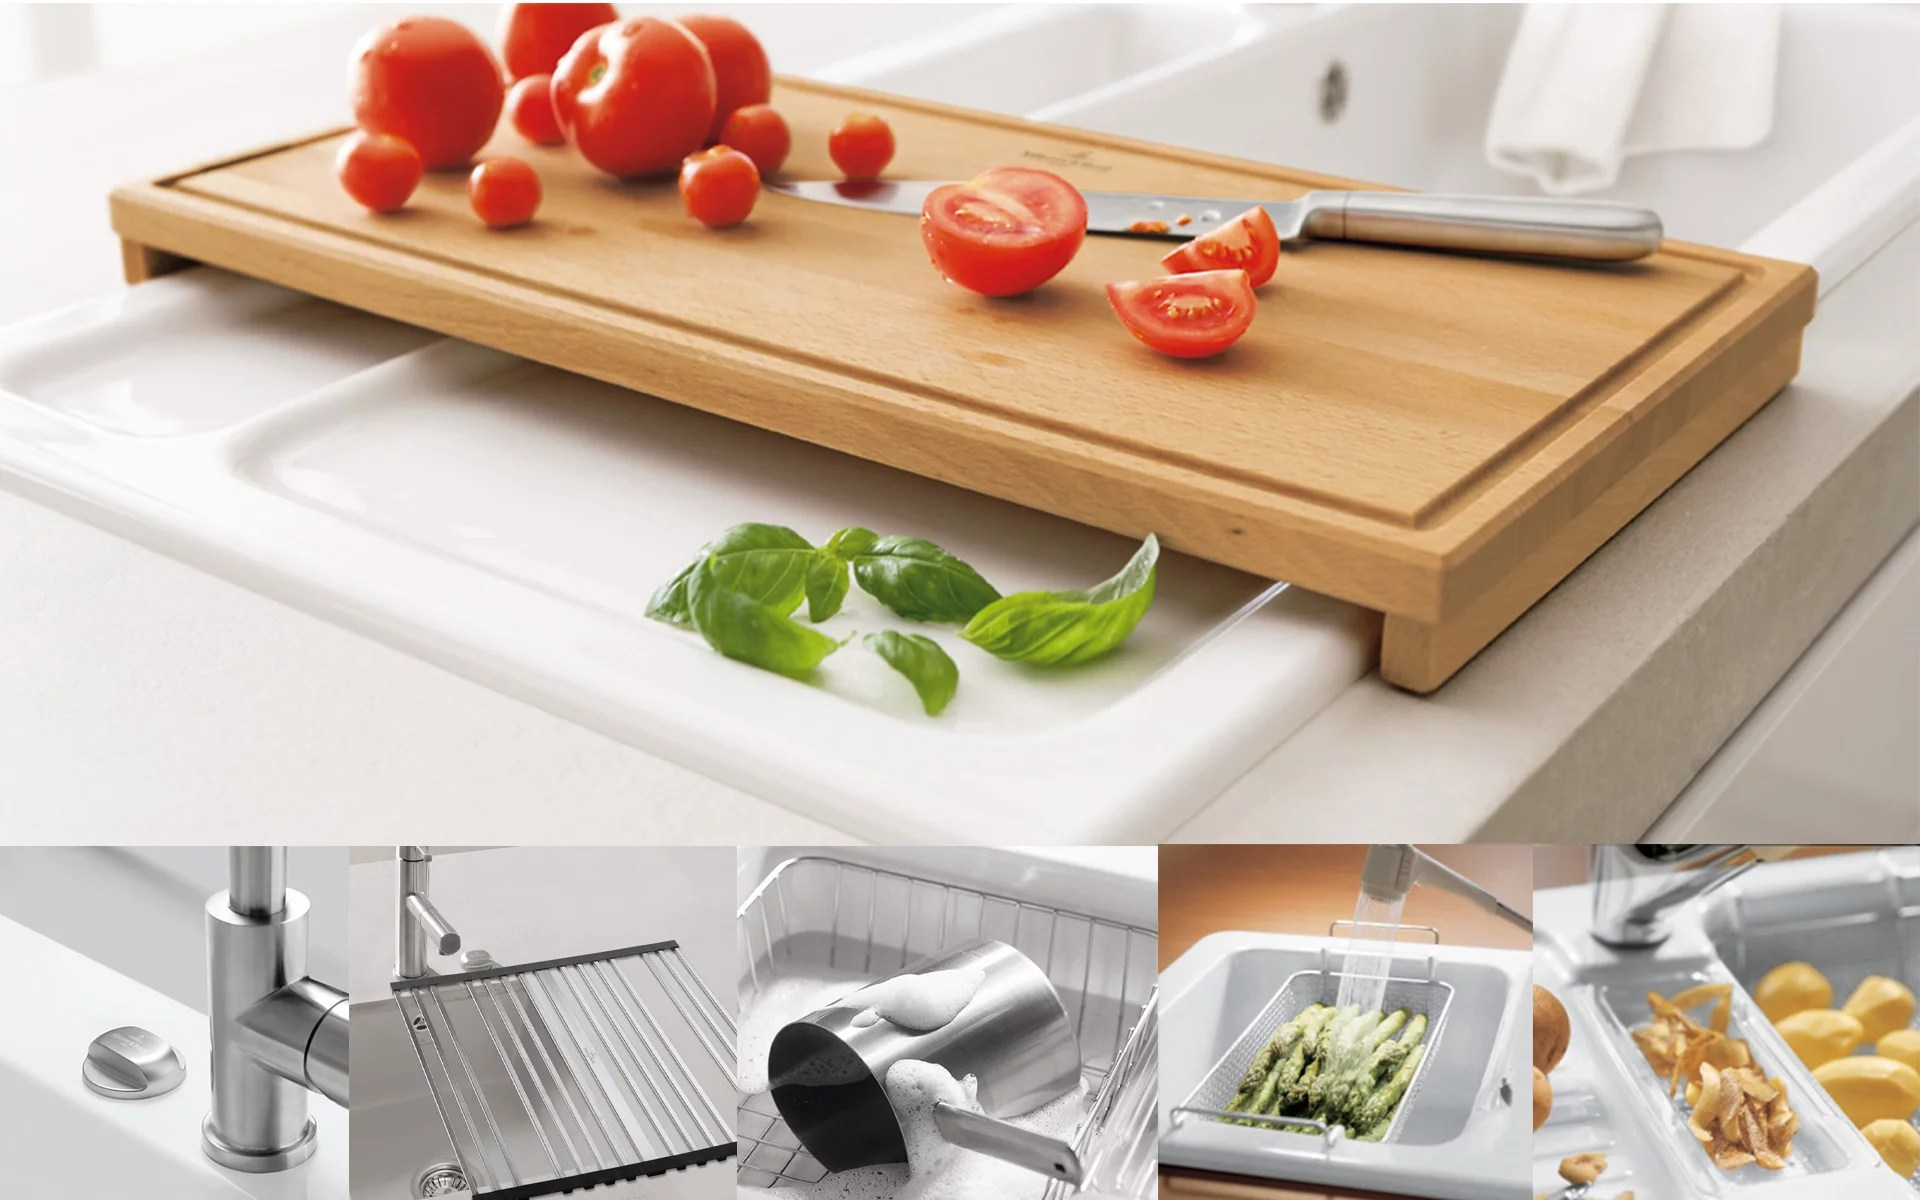 Kitchen Accessories From Villeroy & Boch  For More Fun In